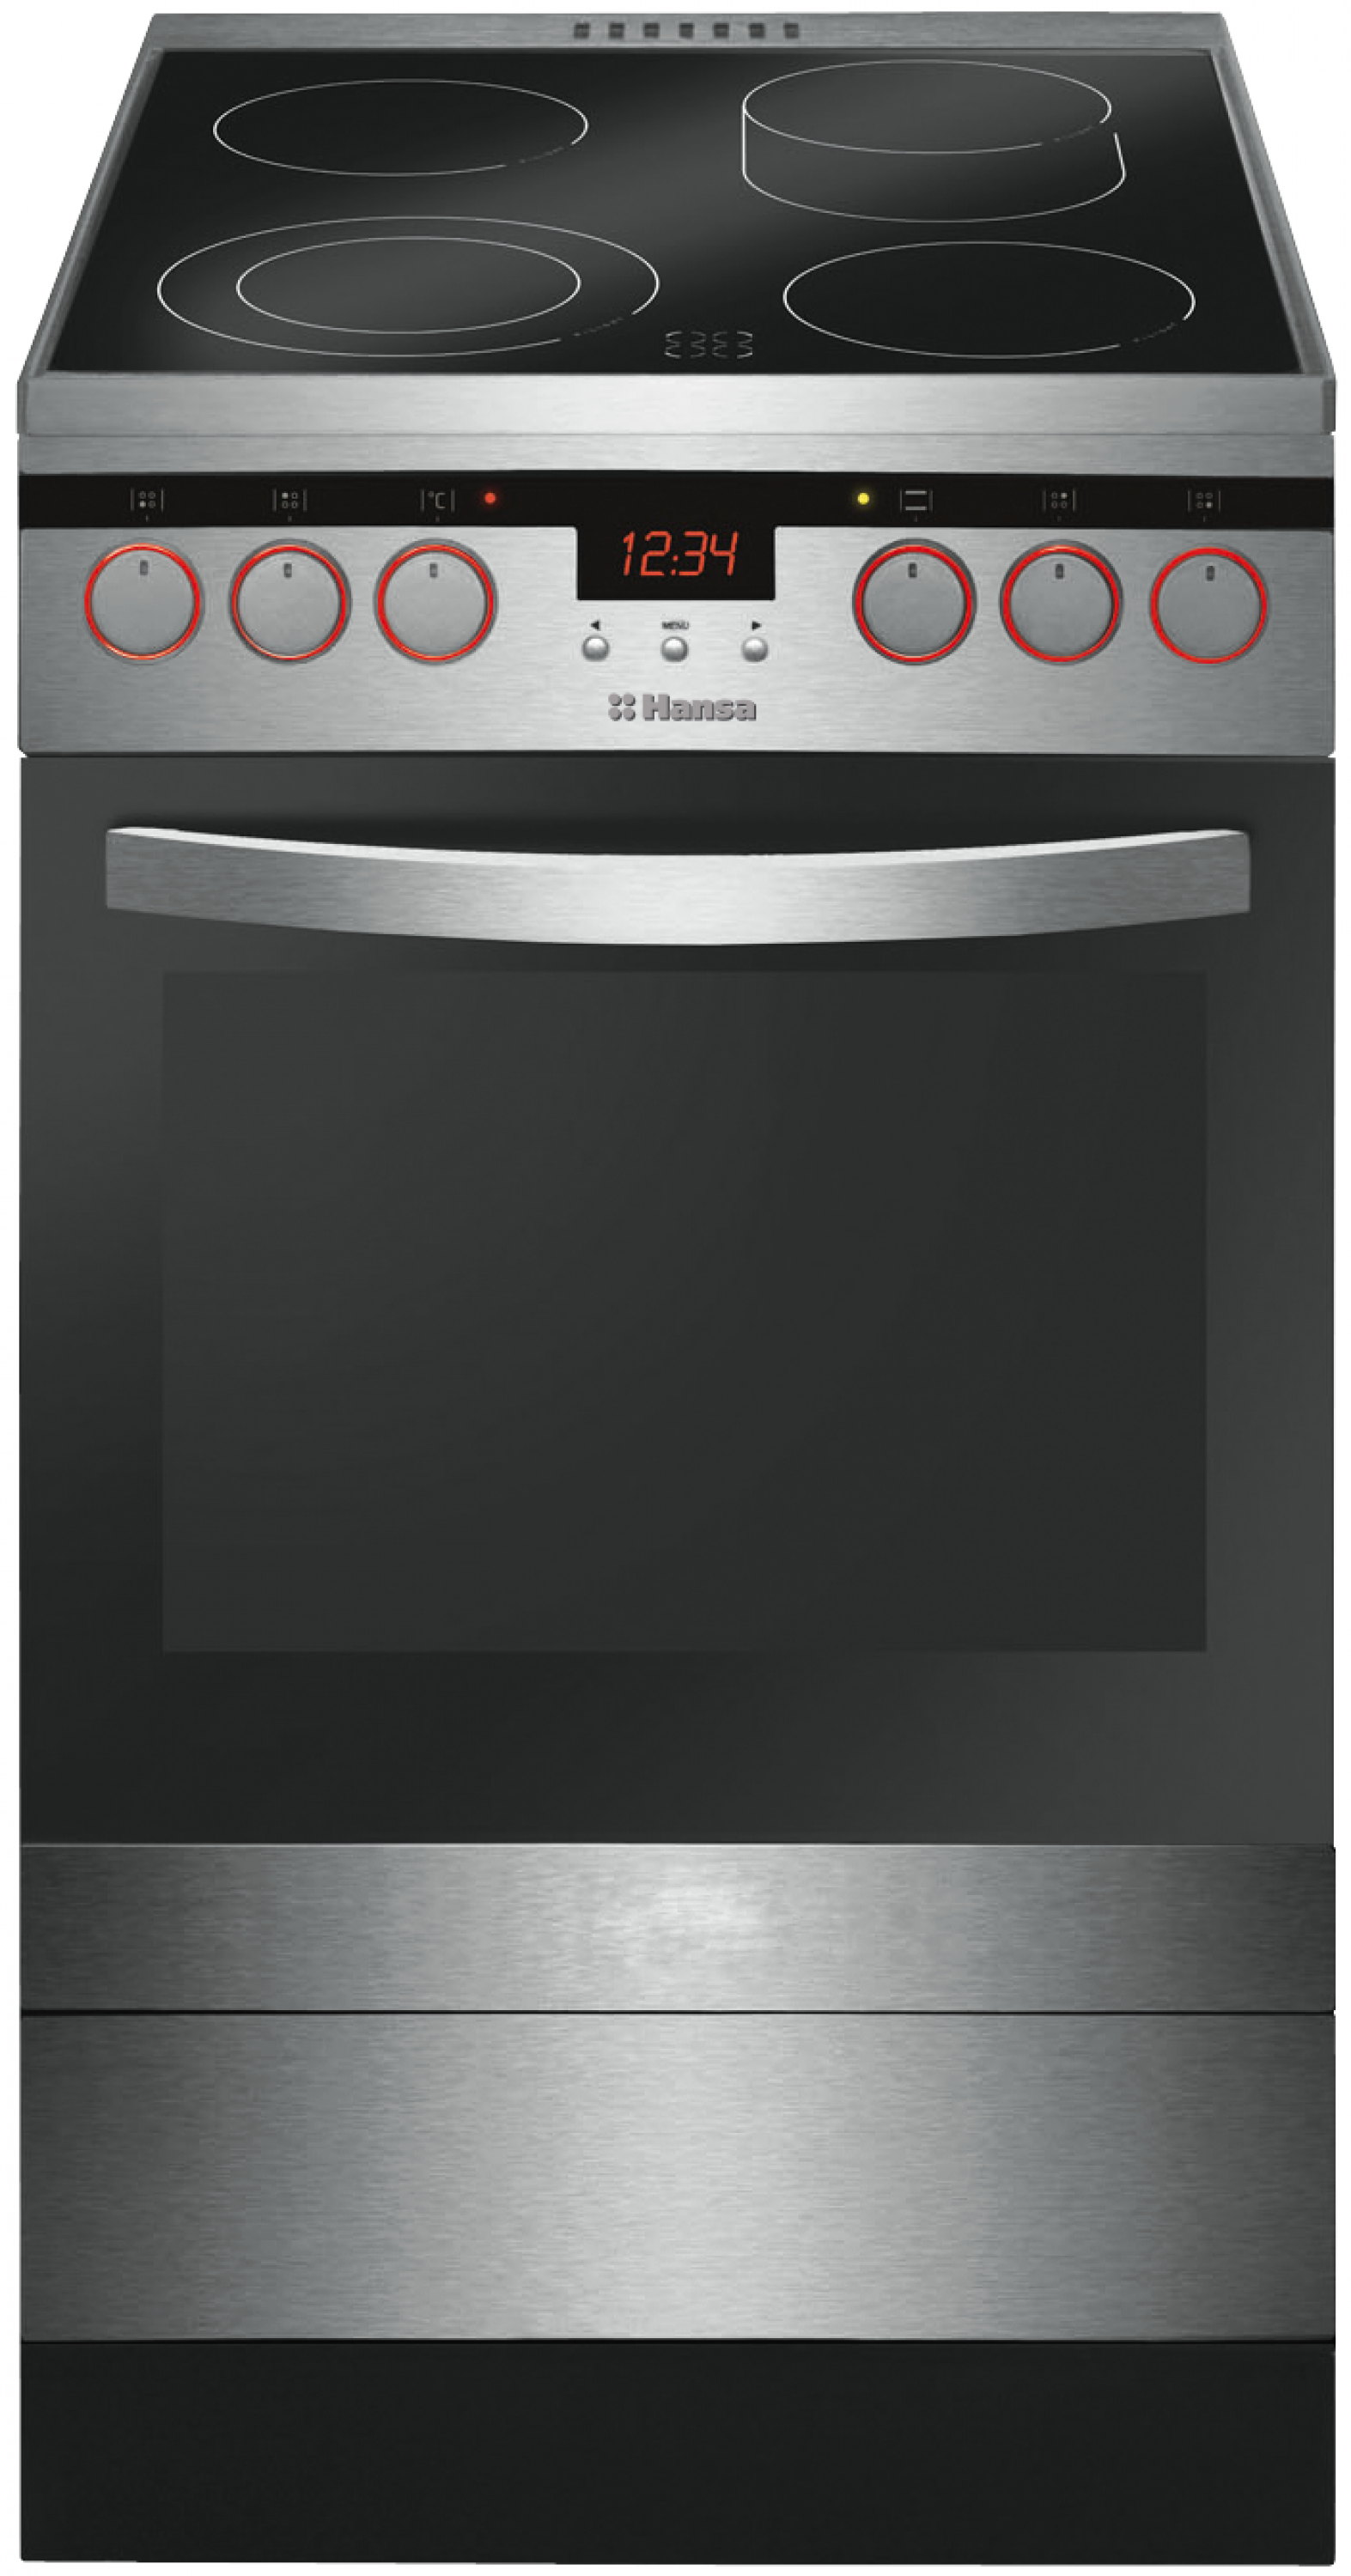 Freestanding cooker with ceramic hob